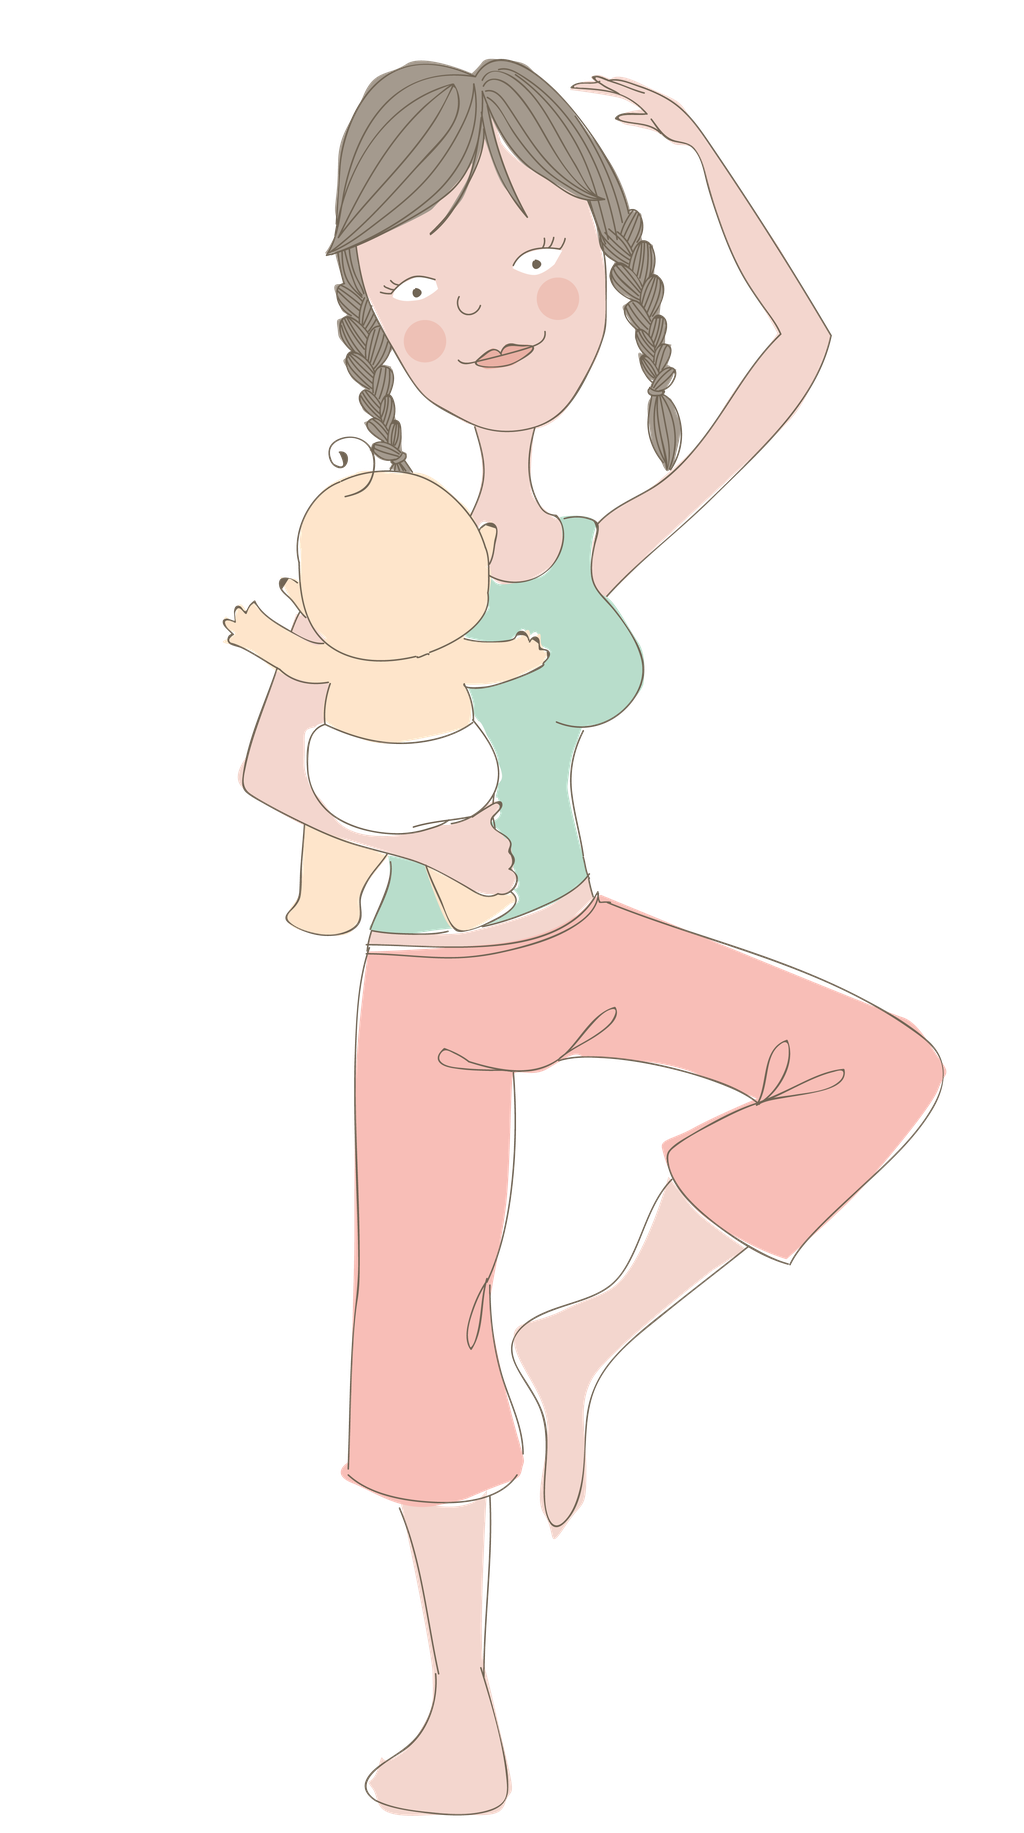 Illustration of mother performing a standing yoga move whilst holding baby, by Design by Pie